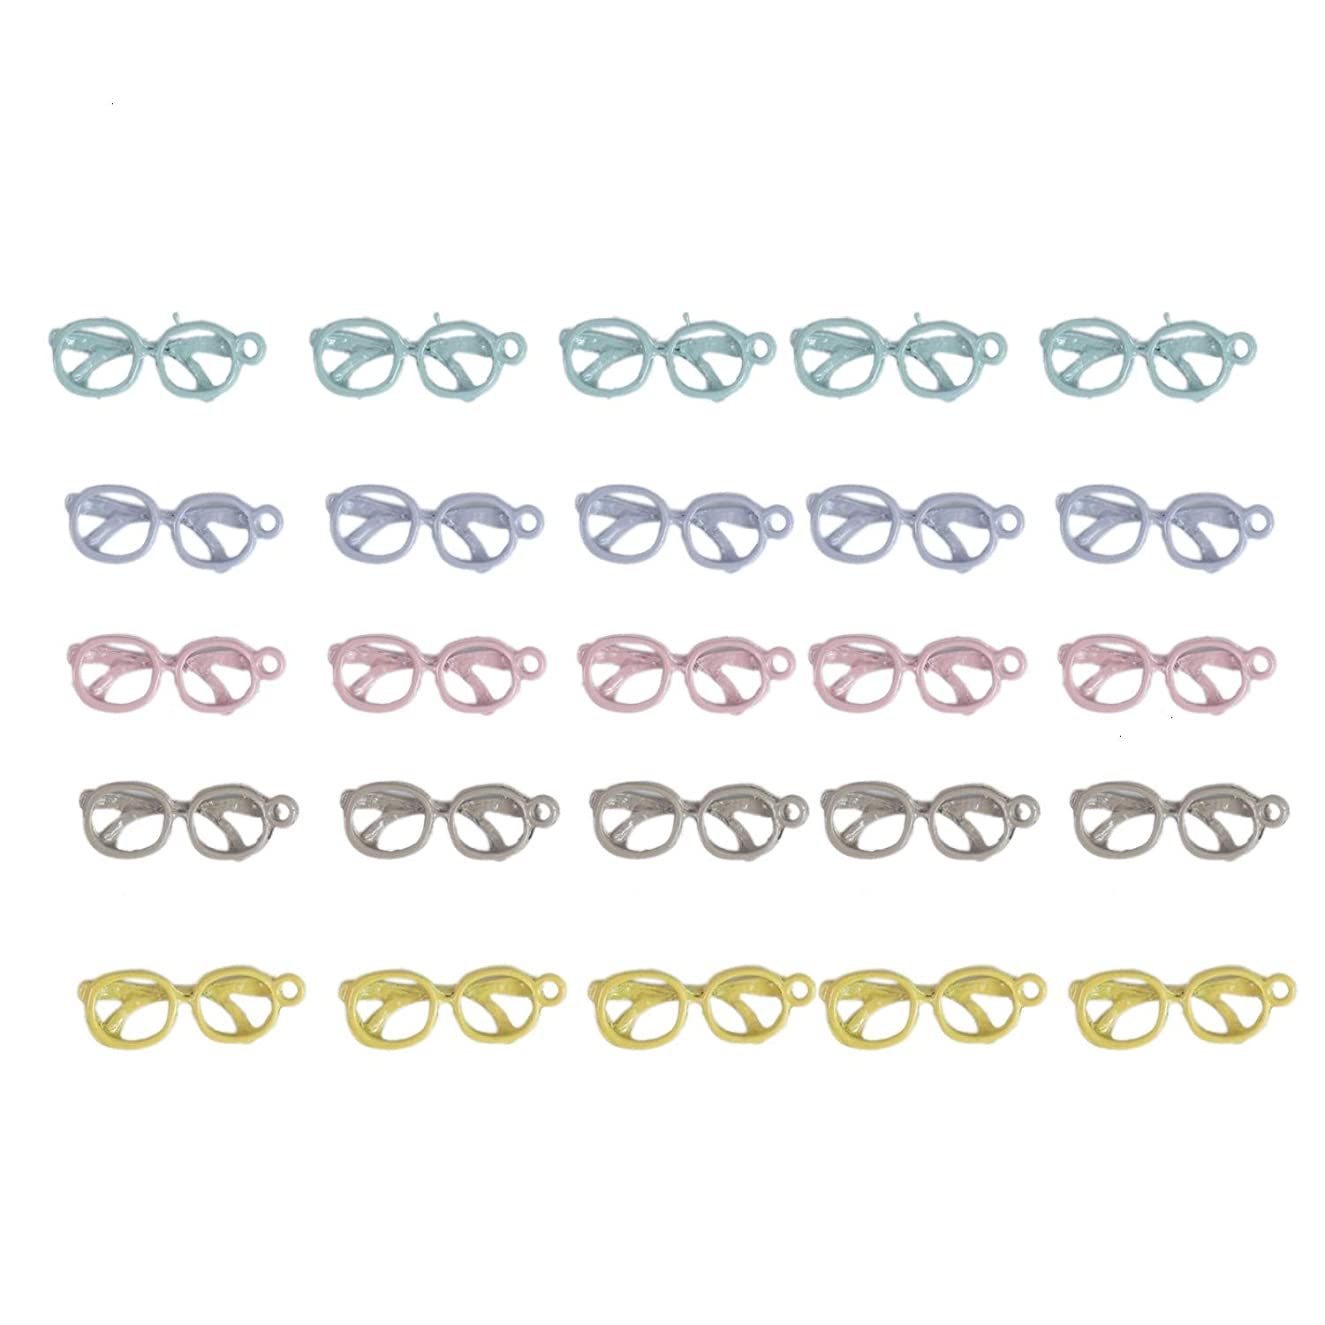 Monrocco 25pcs Cute Alloy Eyeglasses Charms Glasses Charms Pendants for DIY Necklace Bracelet Jewelry Making